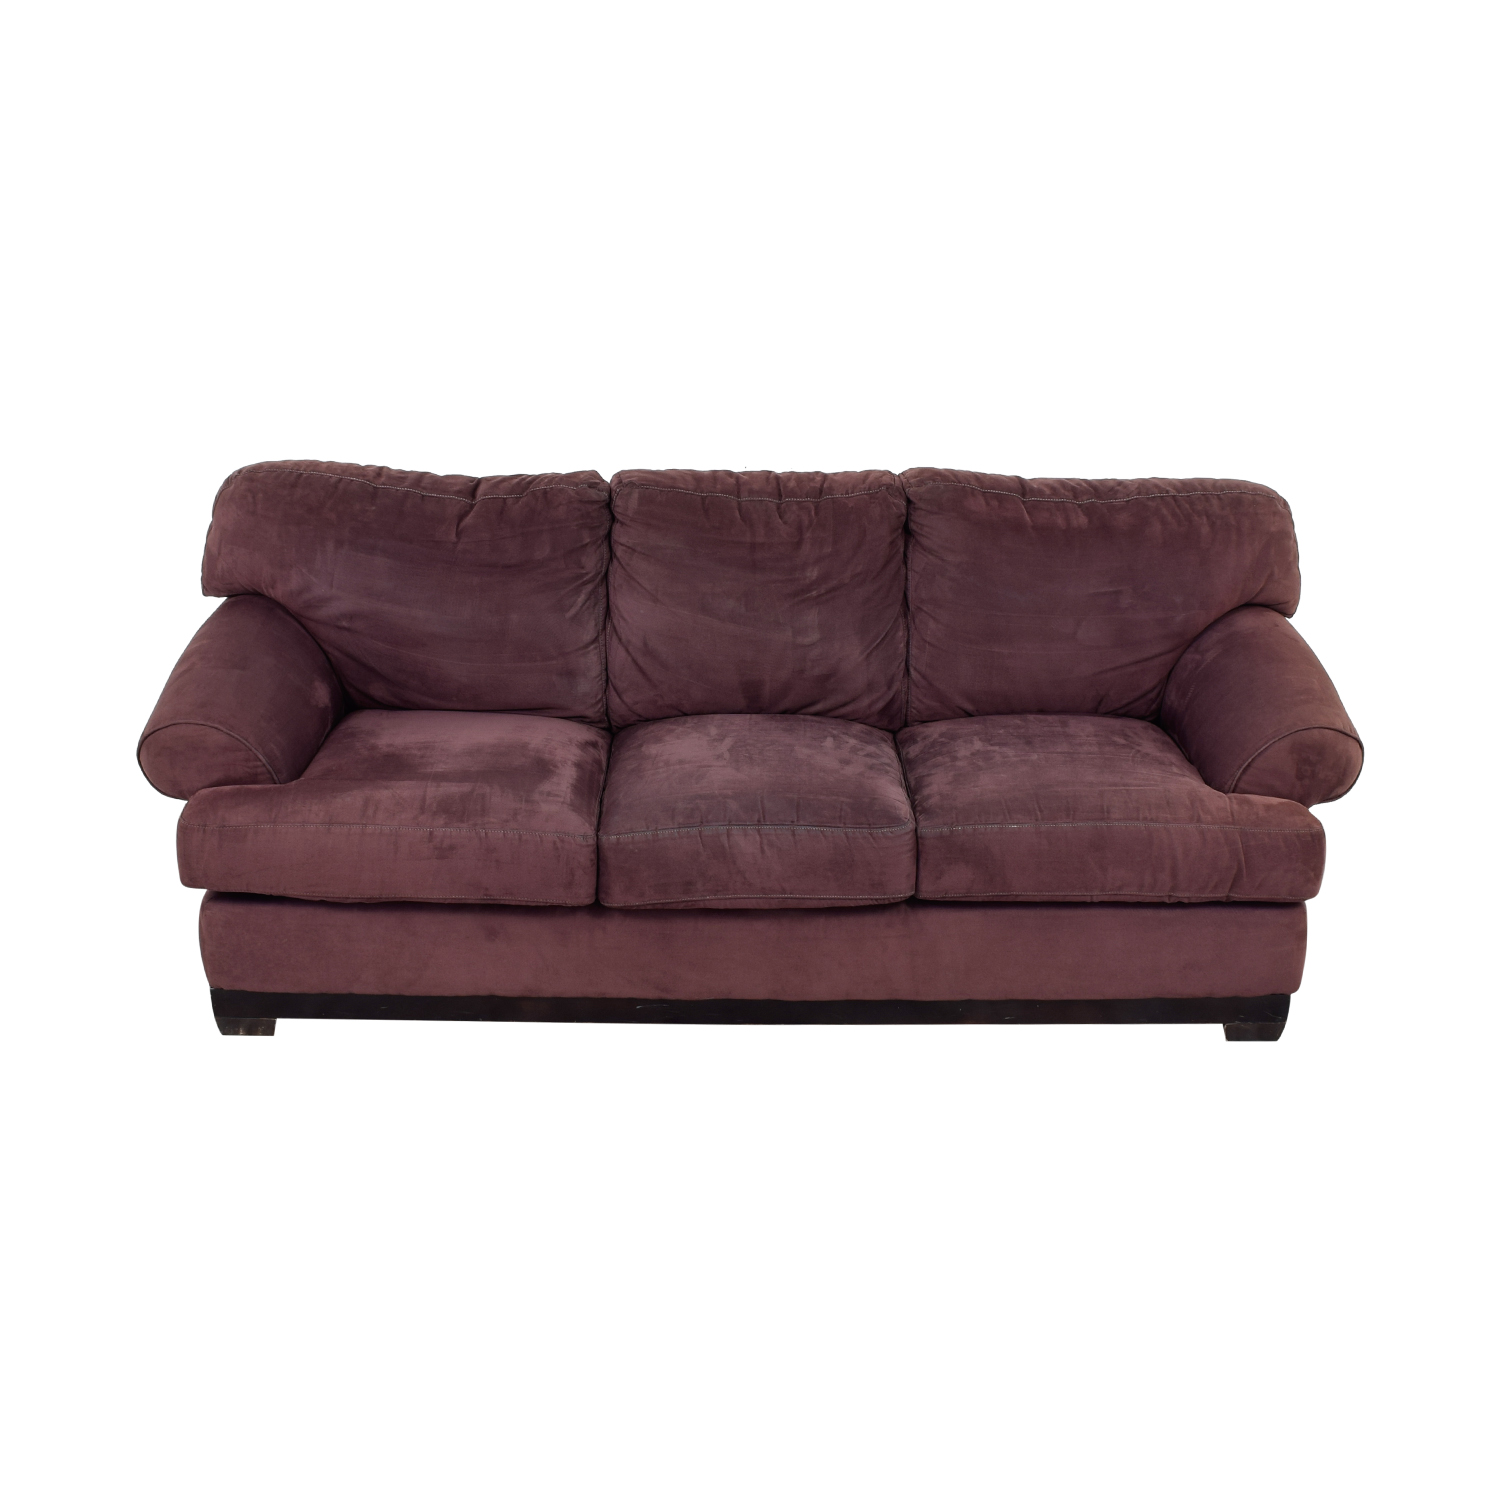 Macy's Macy's Plum Three-Cushion Sofa nj